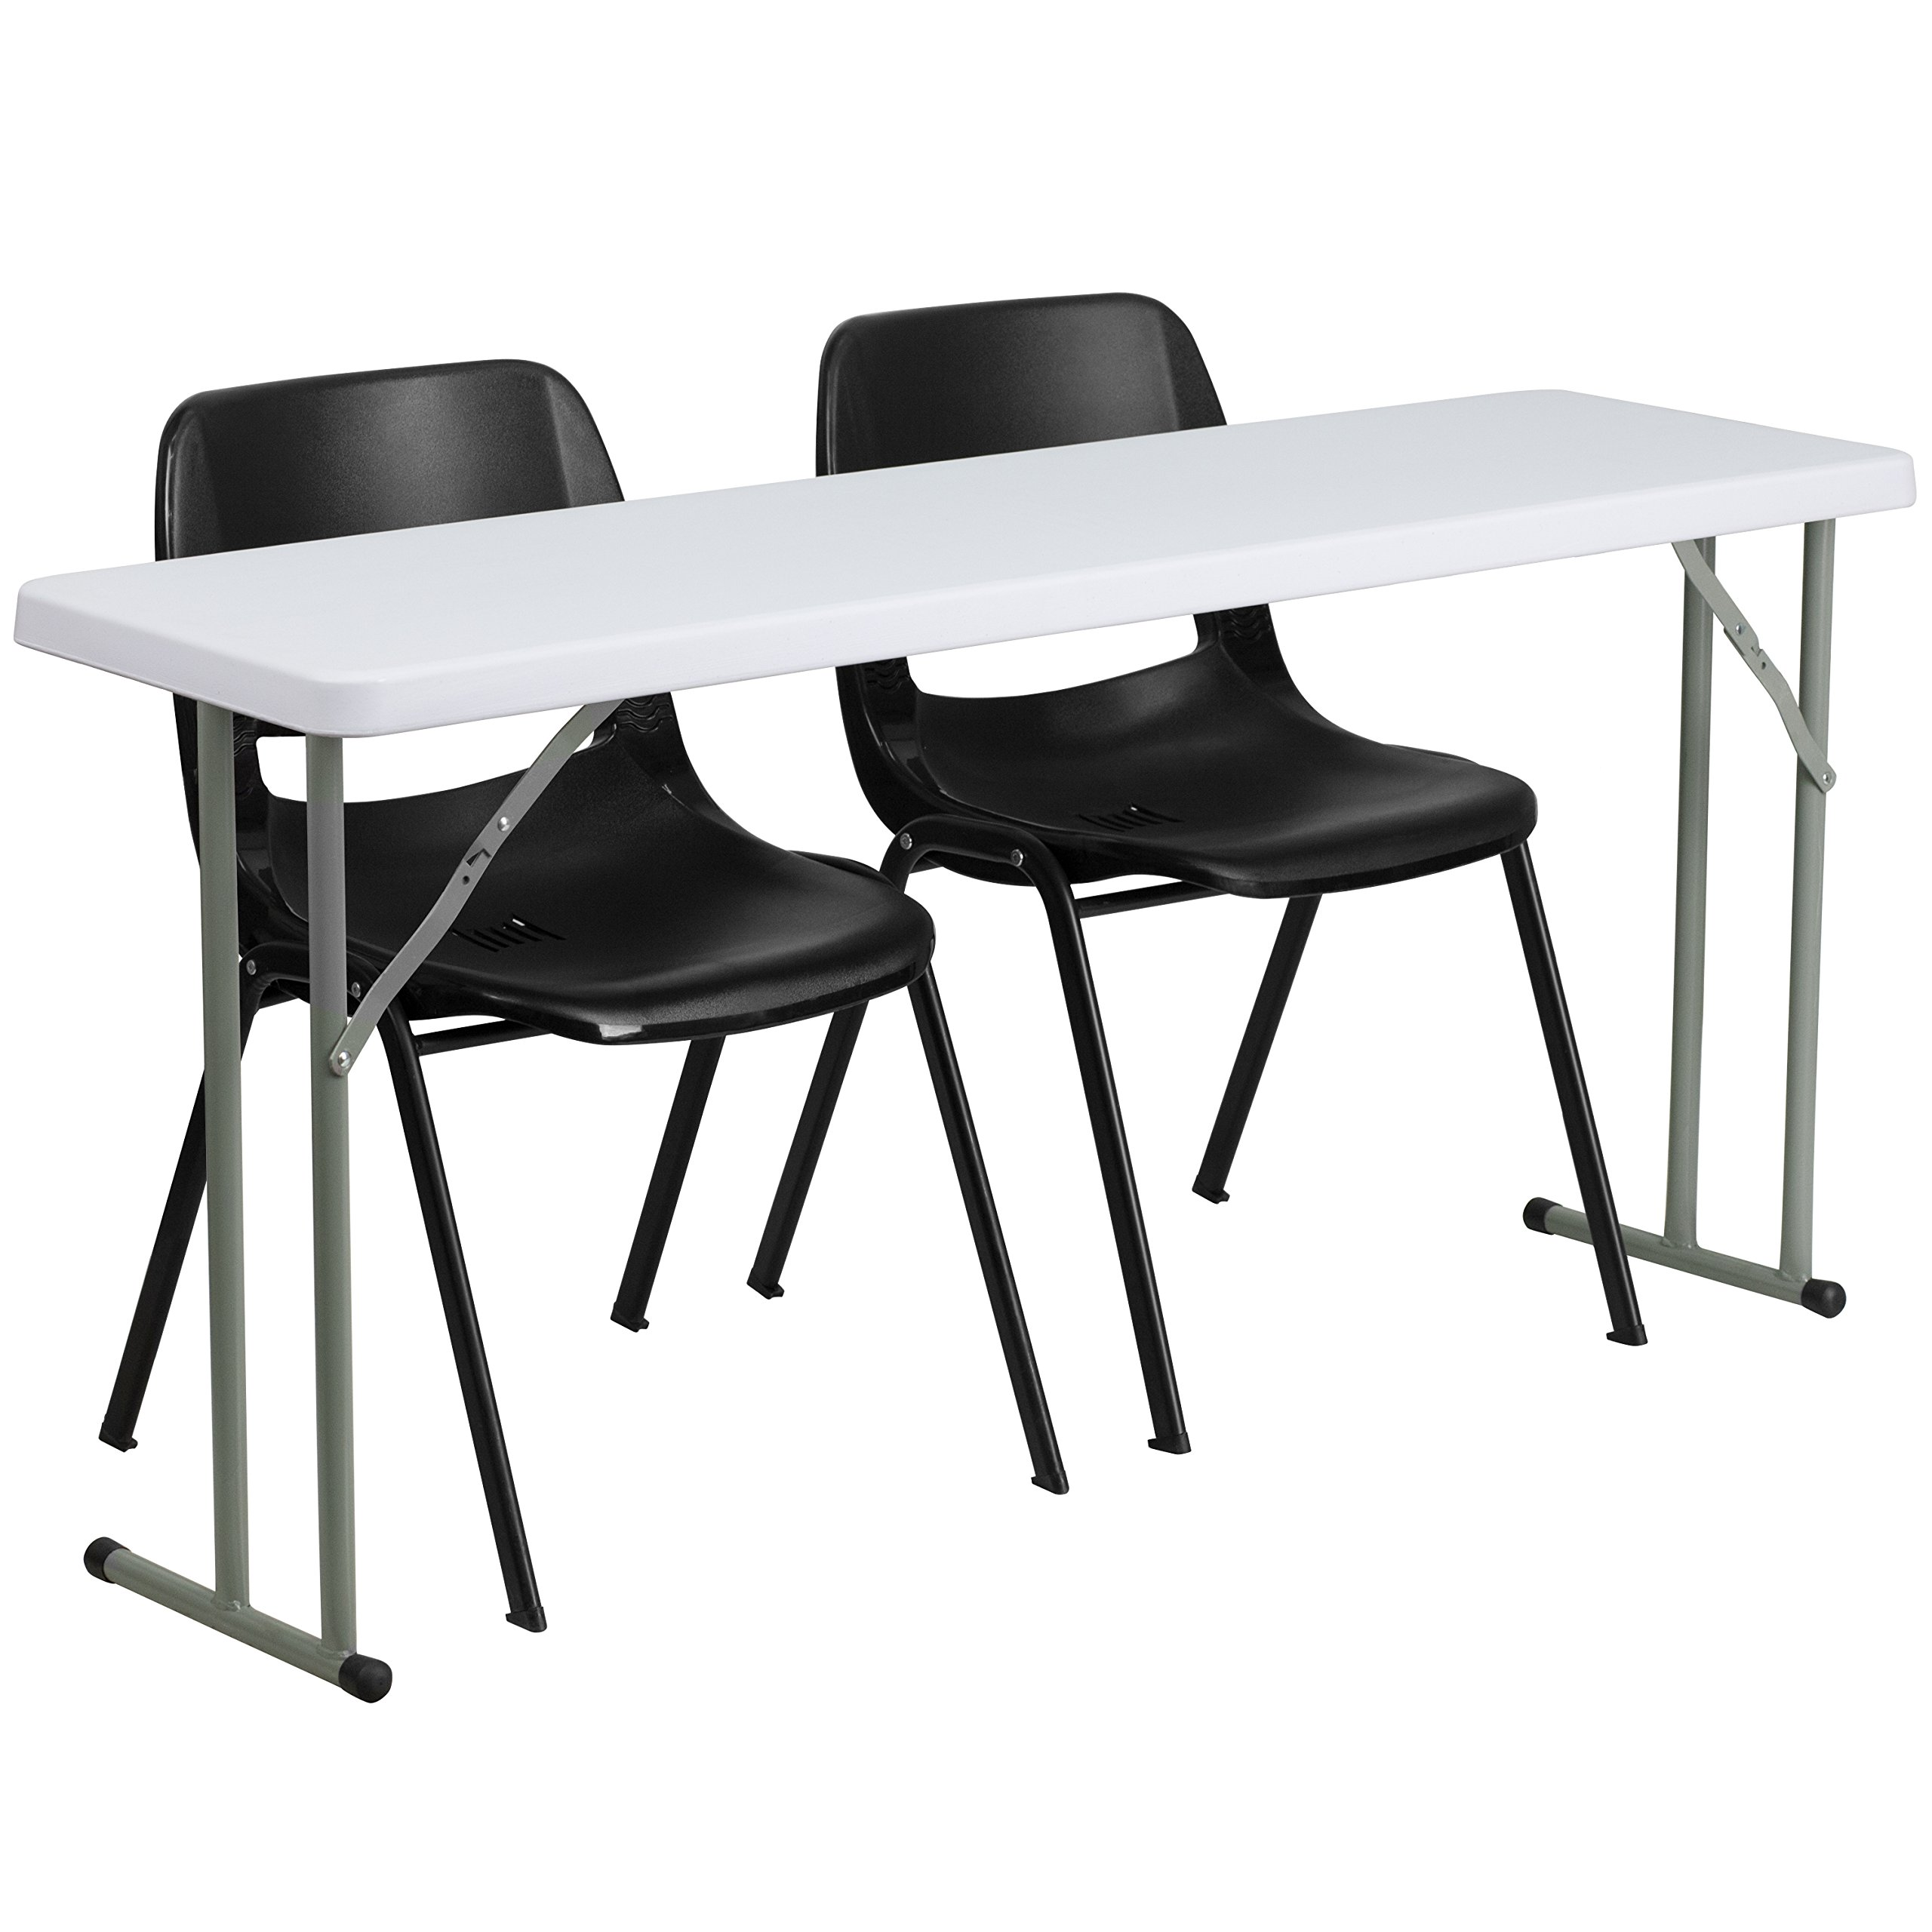 Flash Furniture 18'' x 60'' Plastic Folding Training Table Set with 2 Black Plastic Stack Chairs